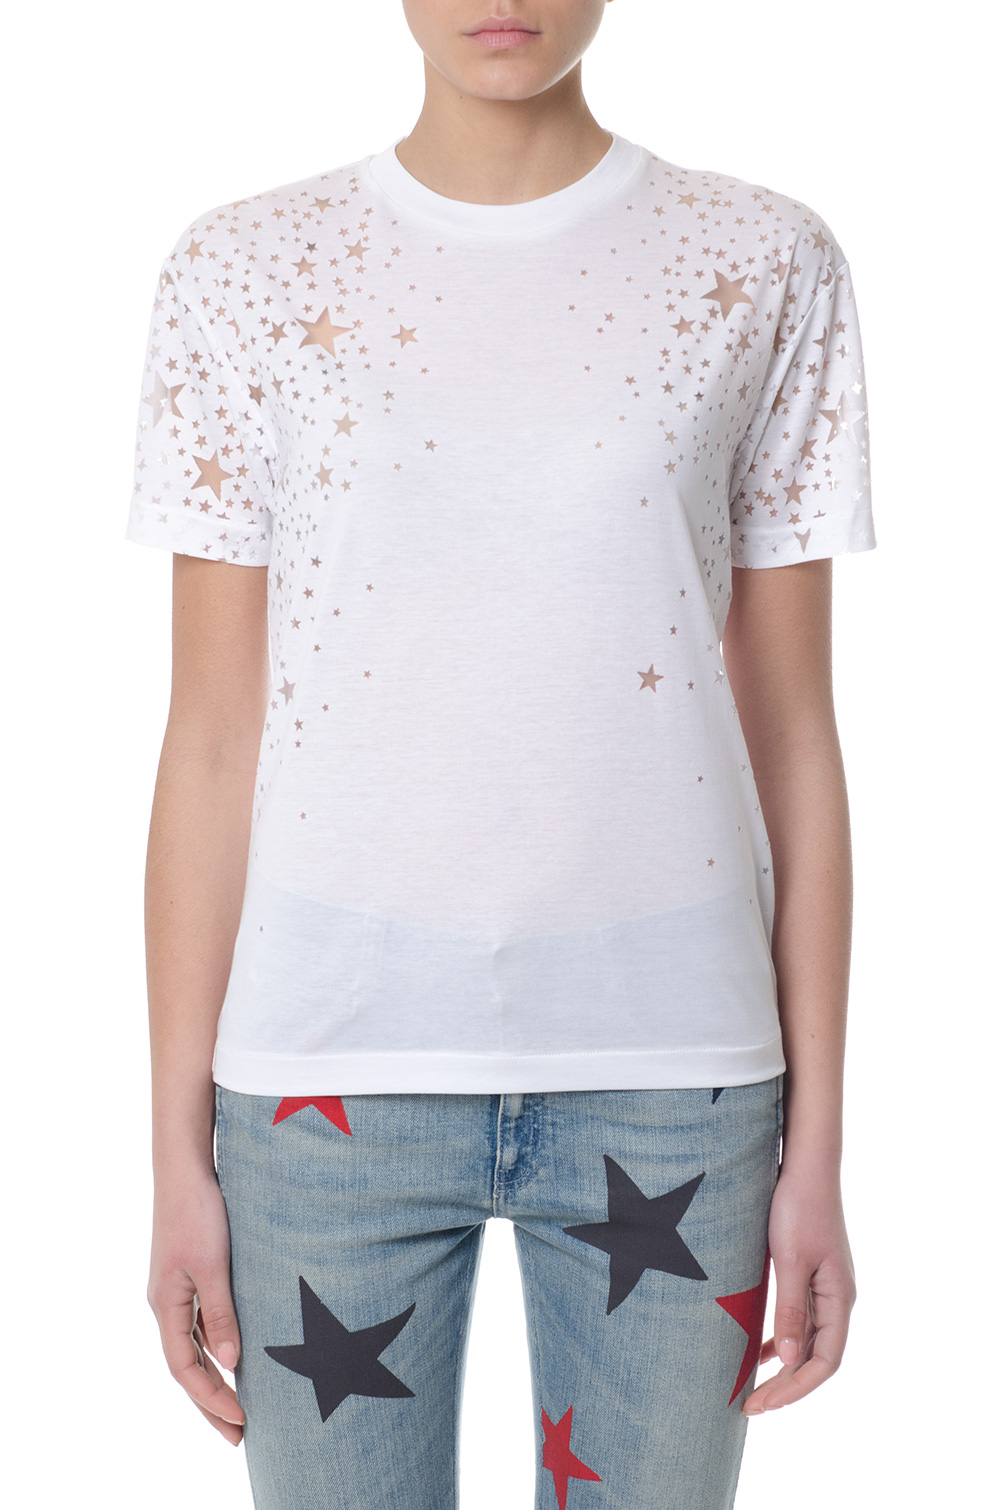 a8d5c877 WHITE STARS MOTIFS T-SHIRT FW 2018 - STELLA McCARTNEY - Boutique Galiano